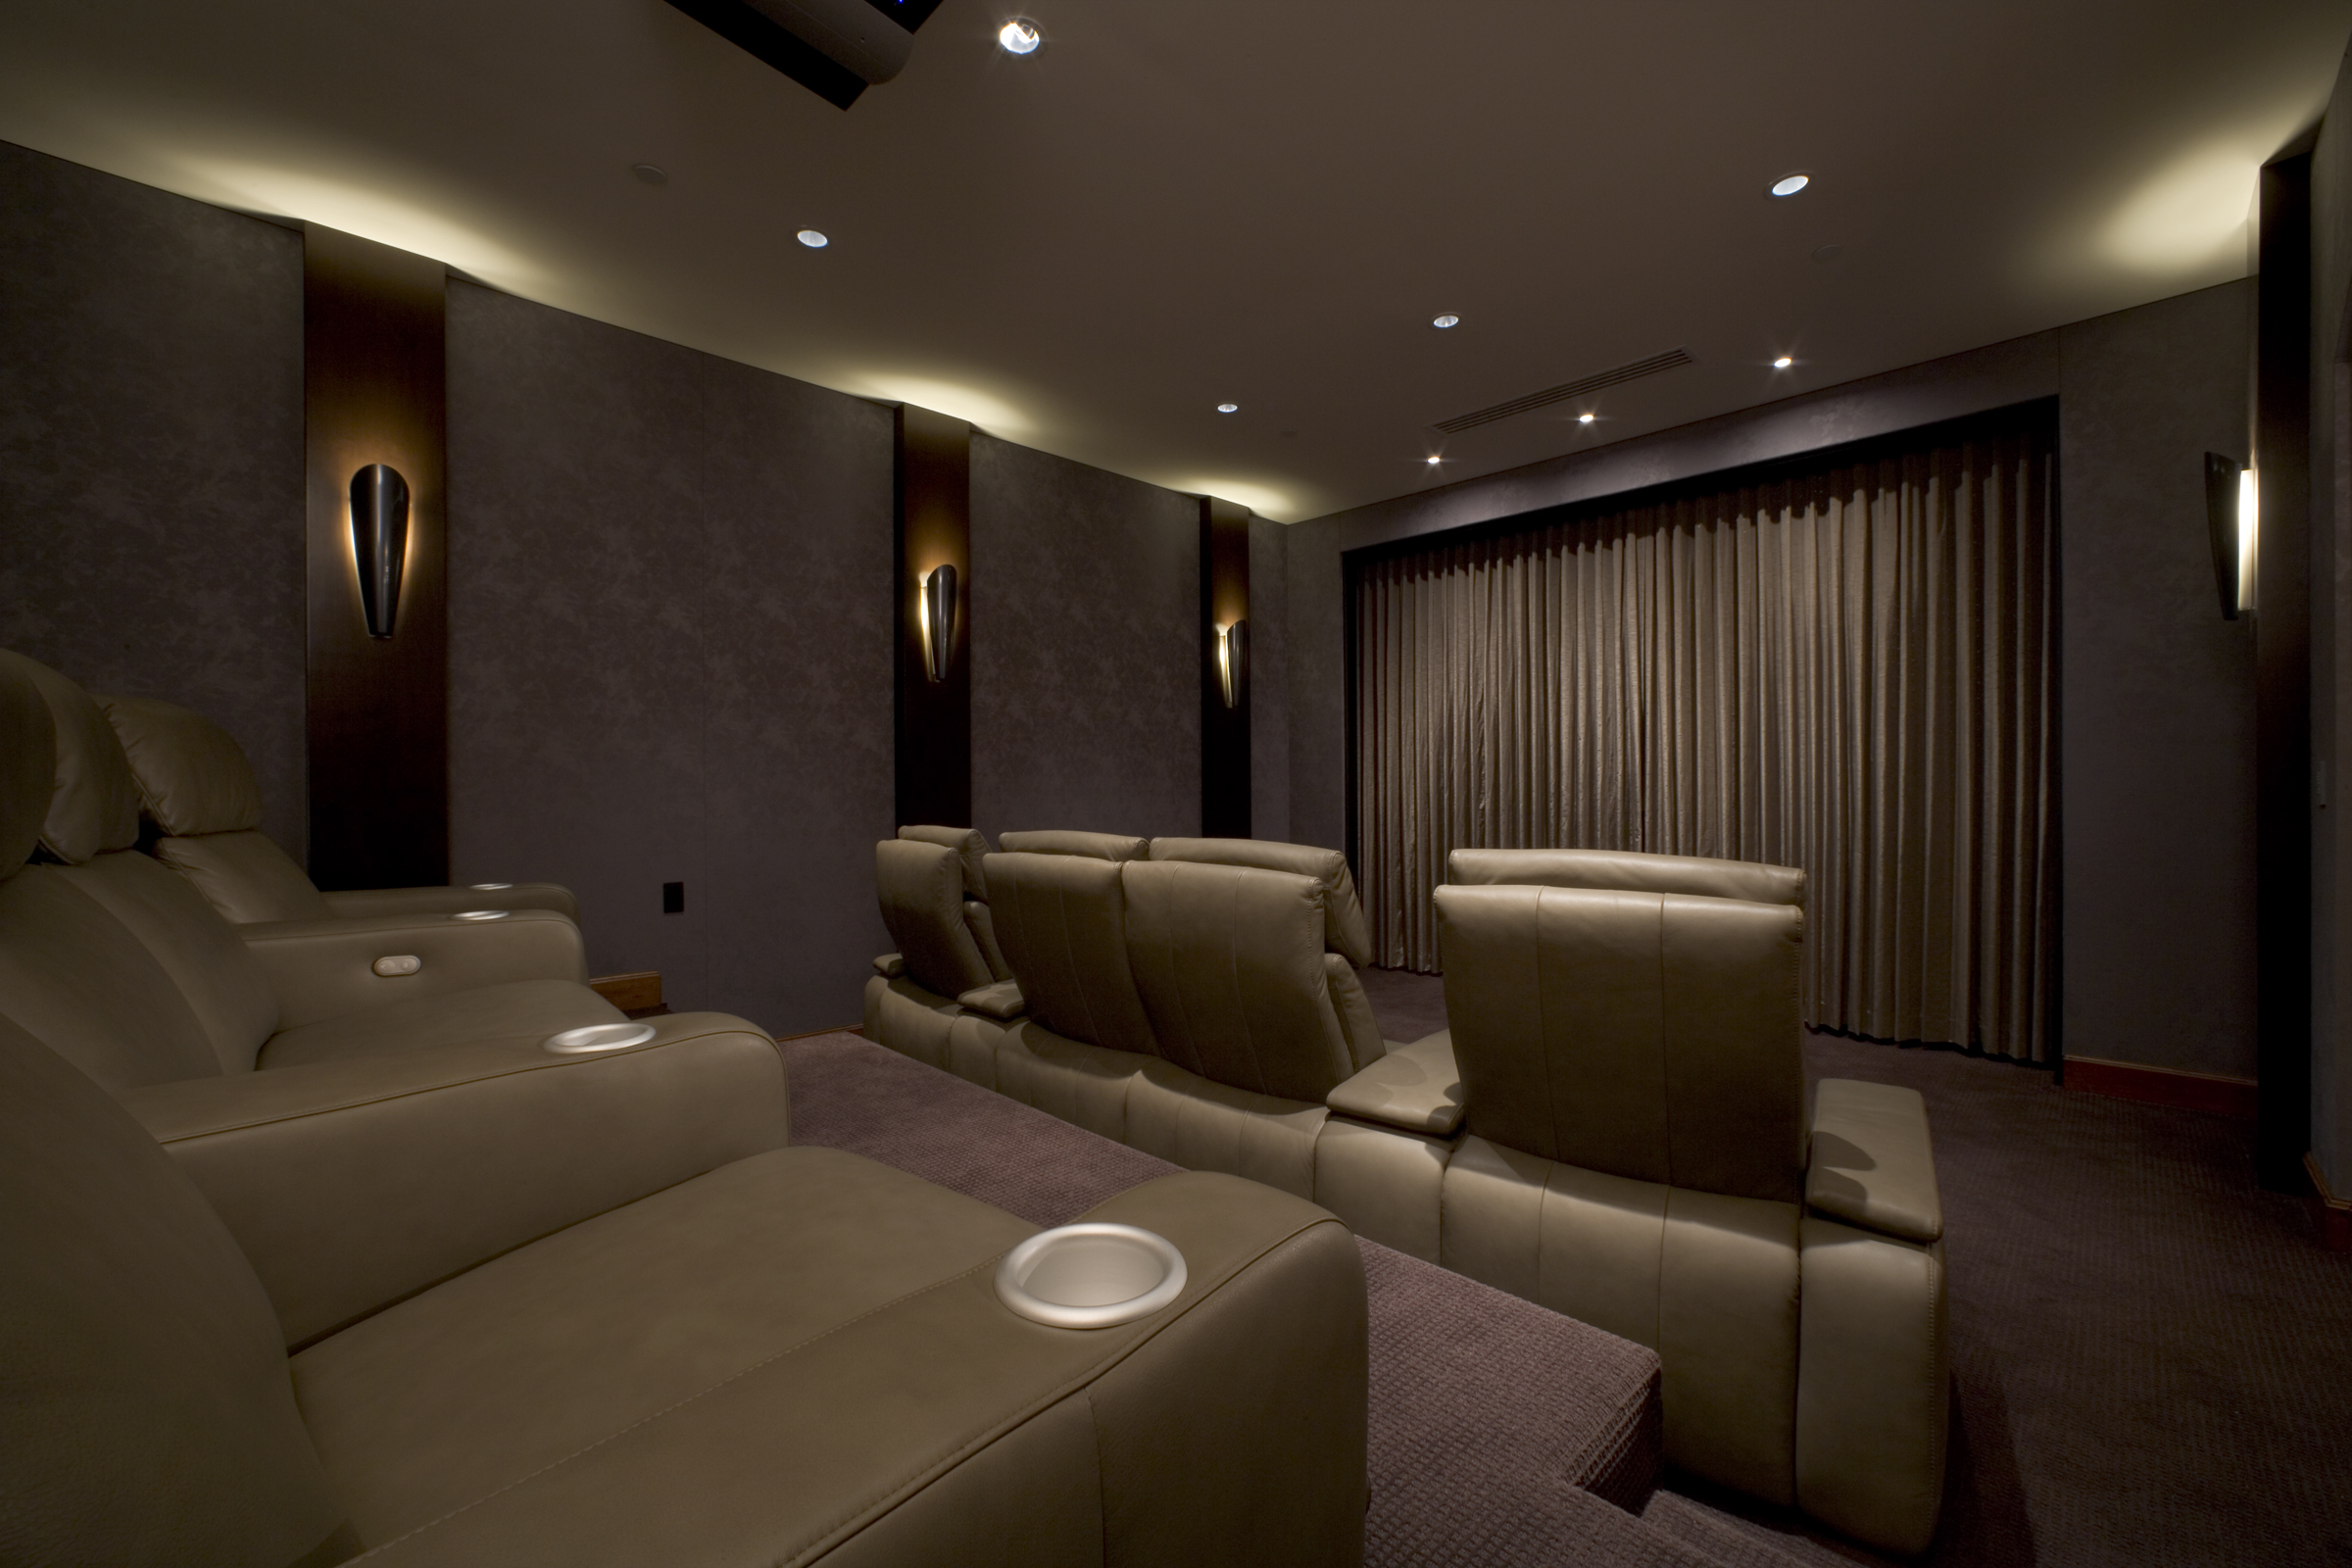 Let Controlit Inc create the Home Theater of your dreams!